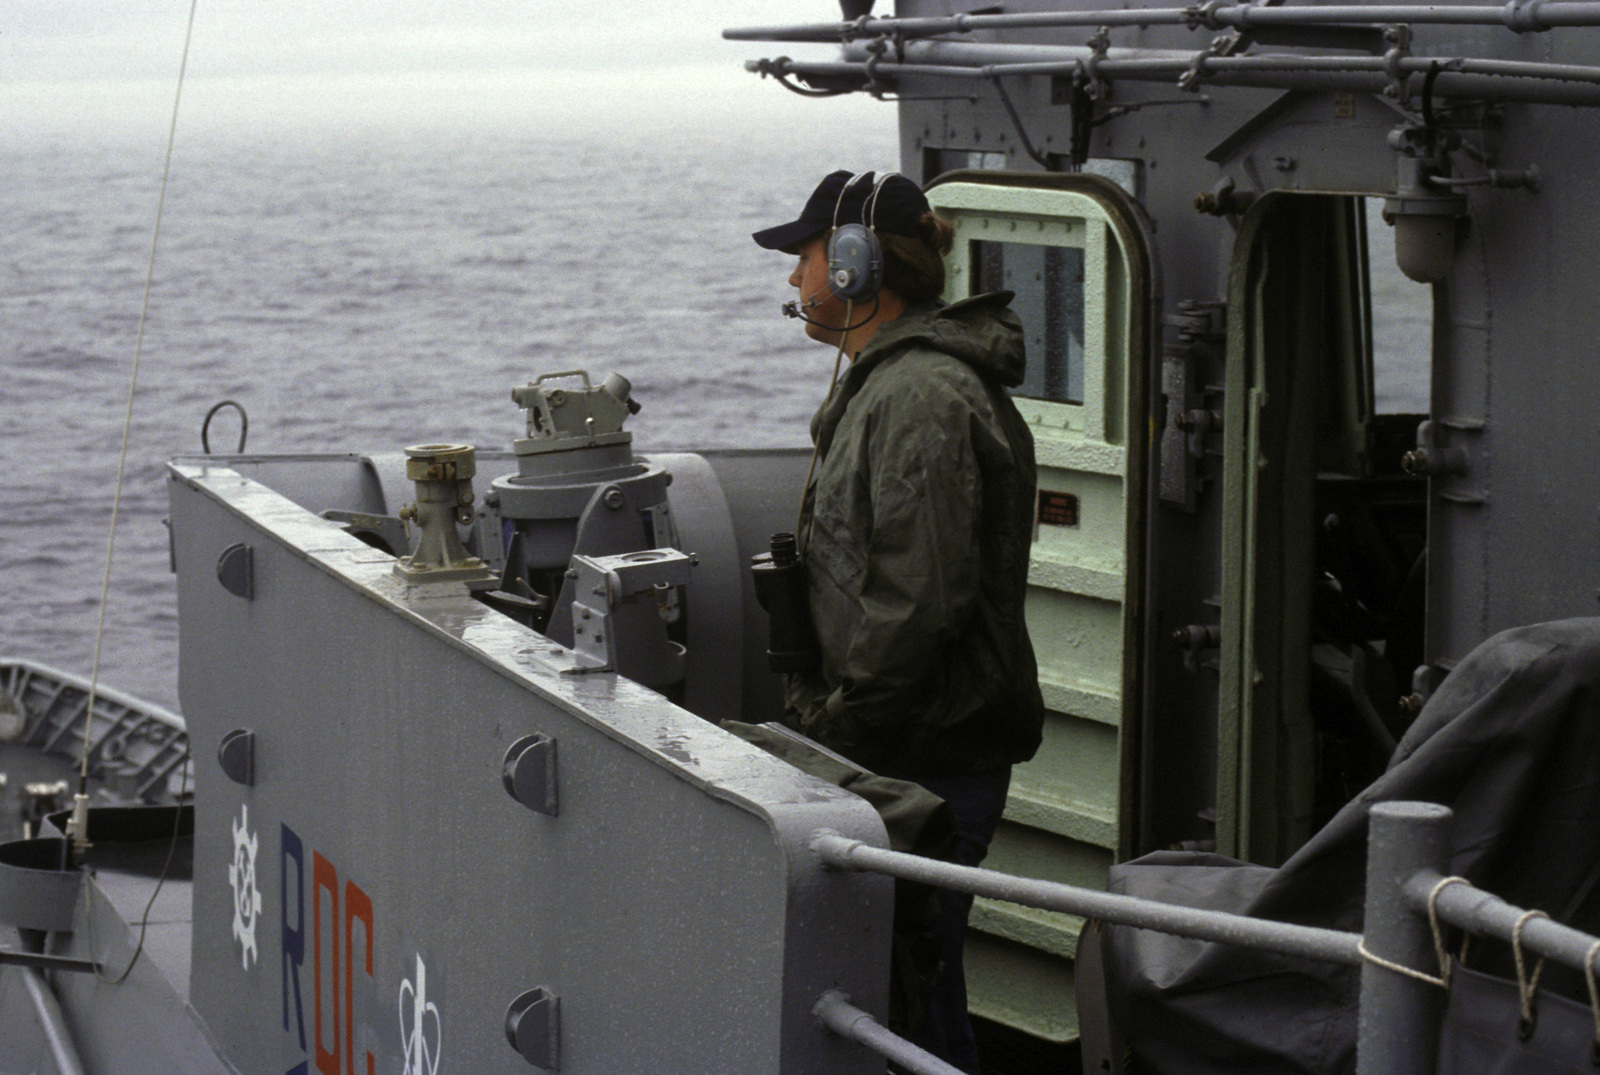 A crewman stands watch on the bridge of the guided missile cruiser USS YORKTOWN (CG 48)